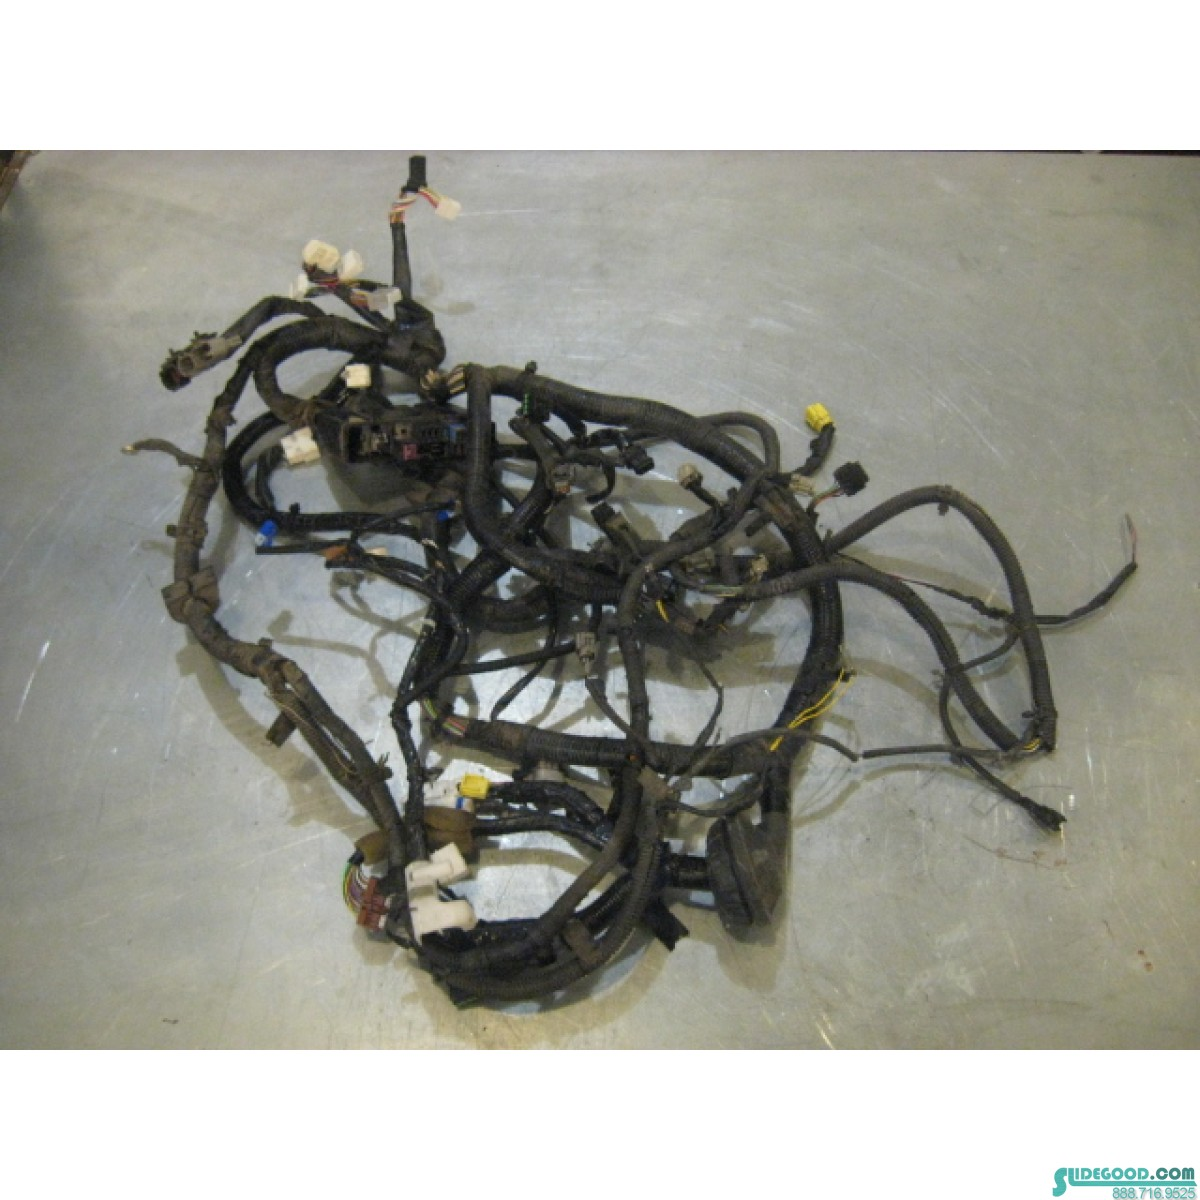 Wiring Harness Infiniti G35 Great Engine Diagram Schematic 2008 G37 05 At Bay 24012 Ac010 R19027 Rh Slidegood Com